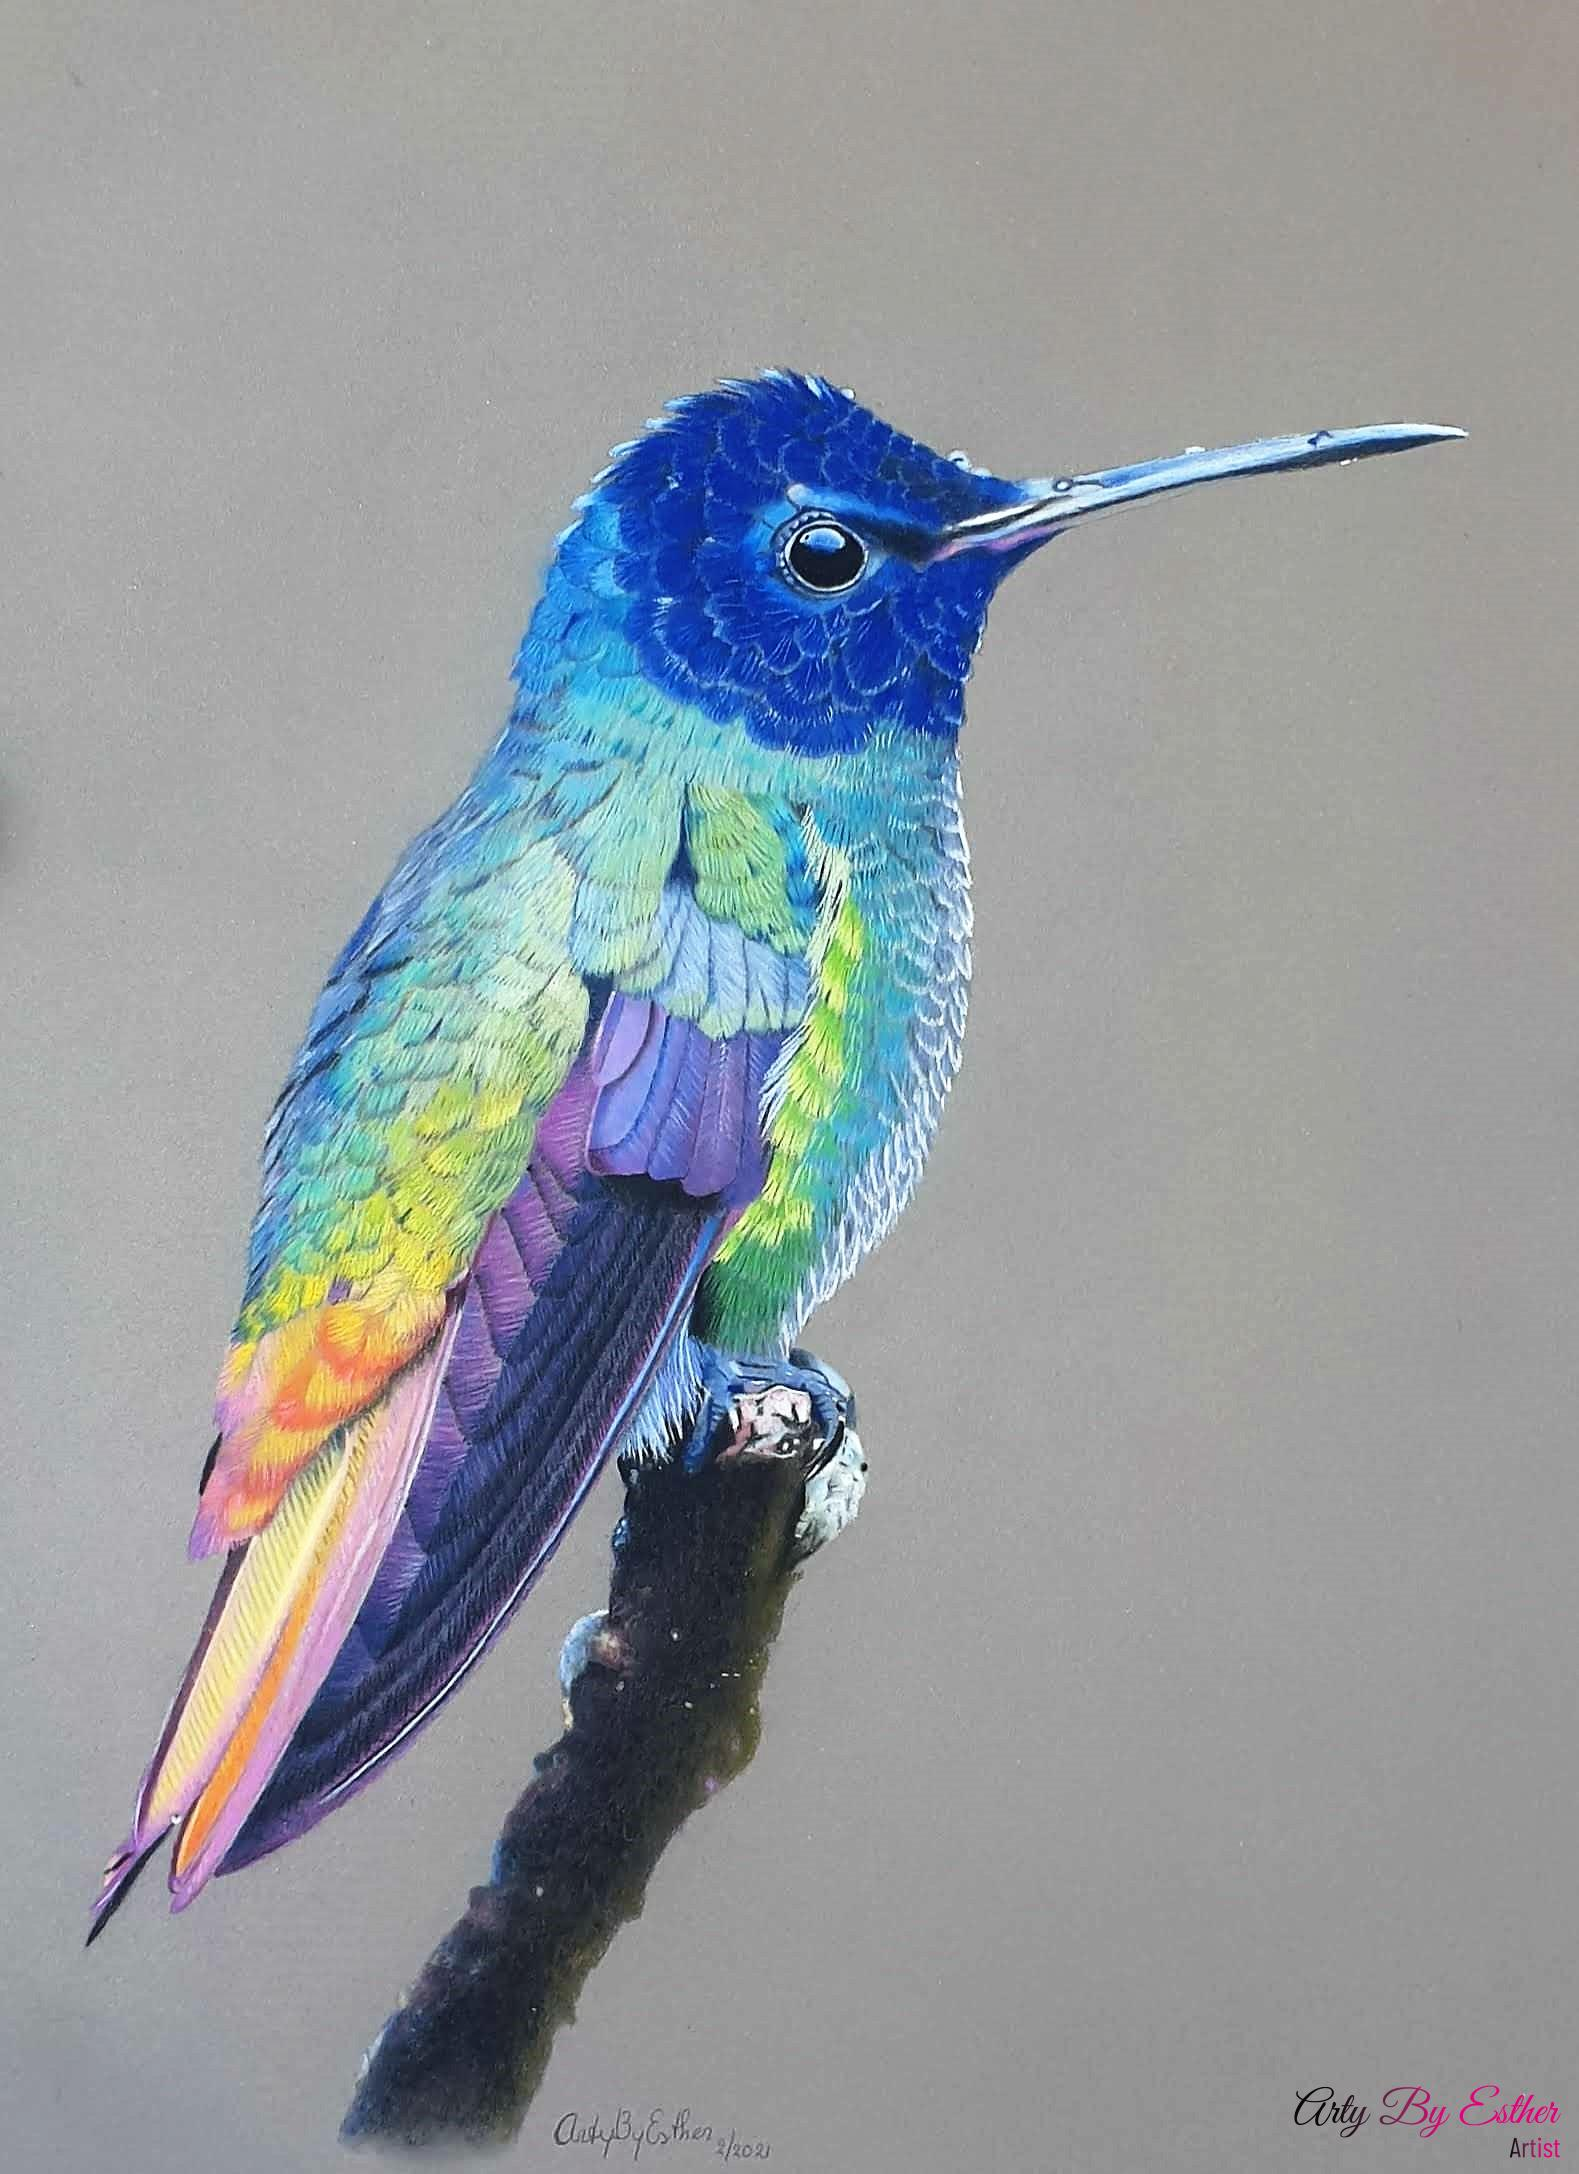 Hummingbird made by Arty By Esther pastelpainting